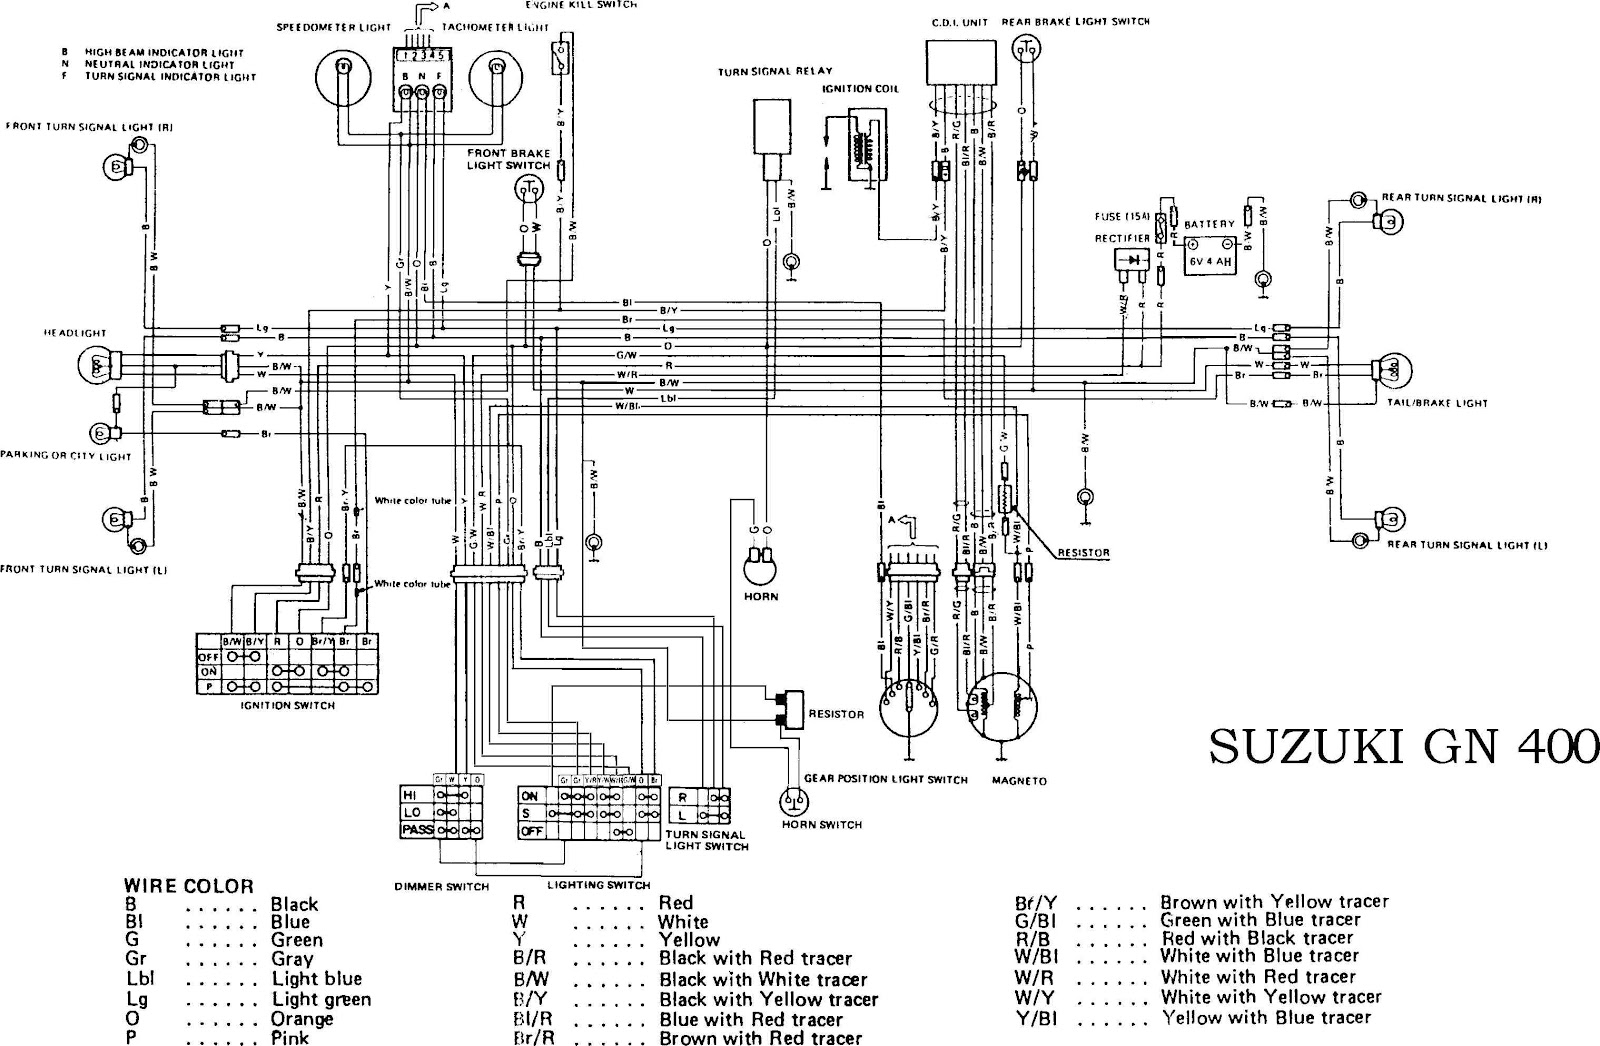 Chevy Dash Wiring Diagram And Schematic Design as well Suzuki Gsx R600 Srad Motorcycle 1998 furthermore 1979 Jeep Cj7 Wiring Harness Diagram further T9671979 1986 ford f350 replace turn signal additionally Painless Wiring Neutral Safety Switch. on jeep cj7 dash parts